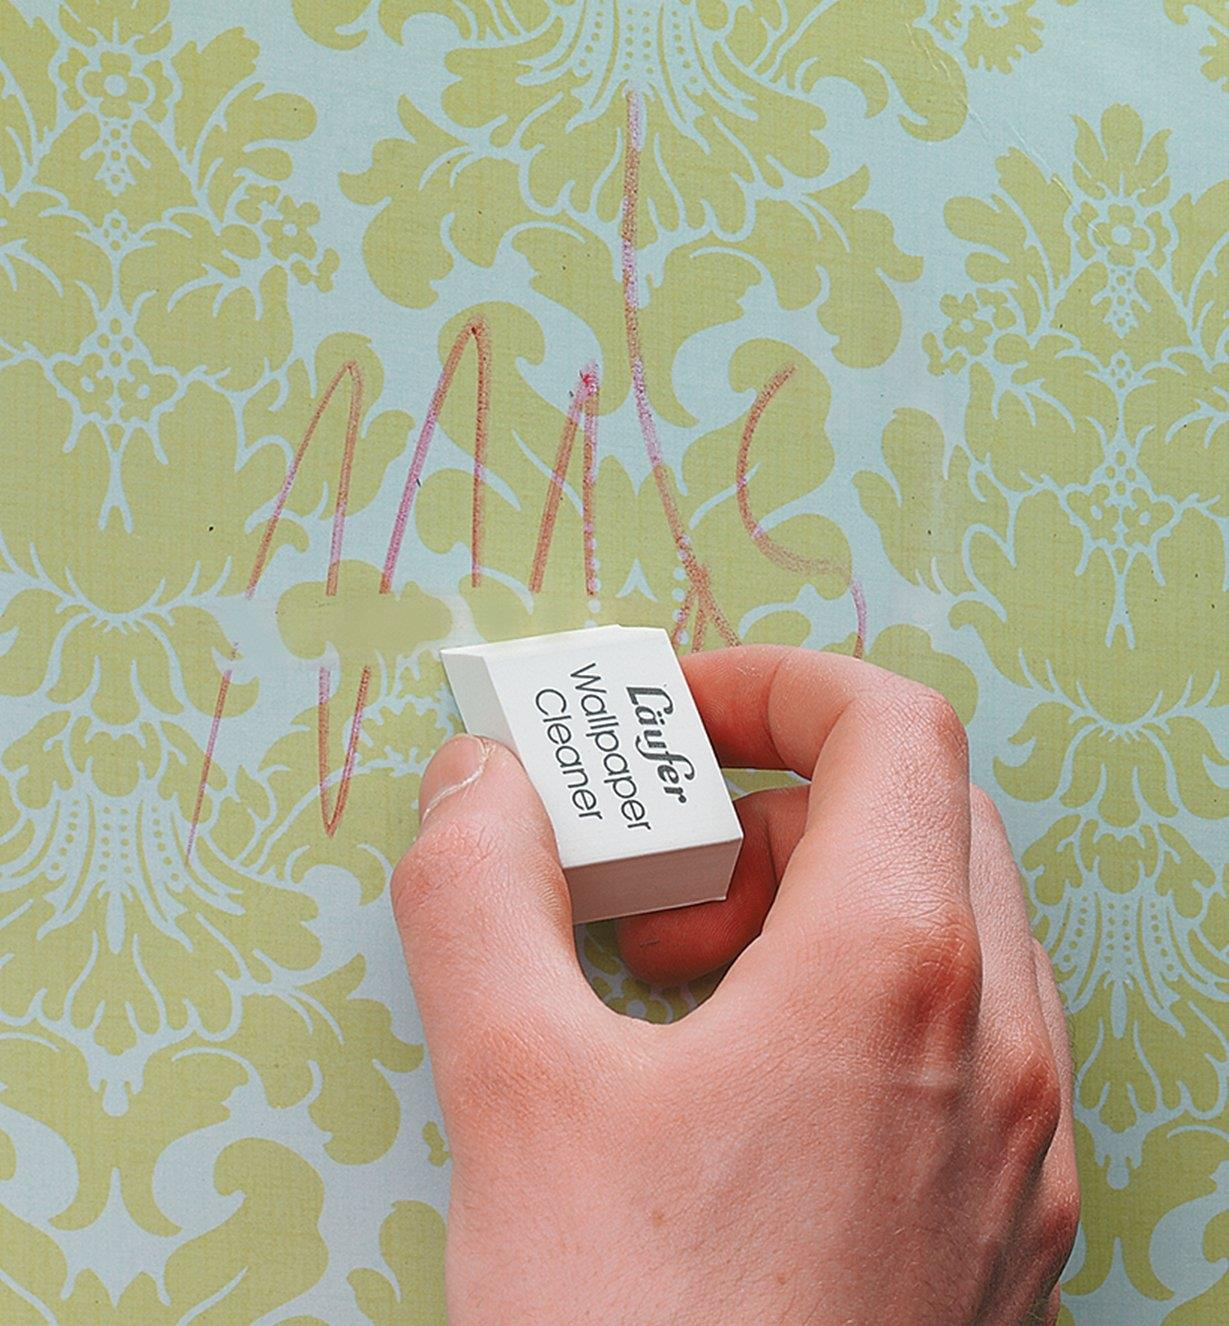 Using the wallpaper eraser to clean crayon marks off wallpaper